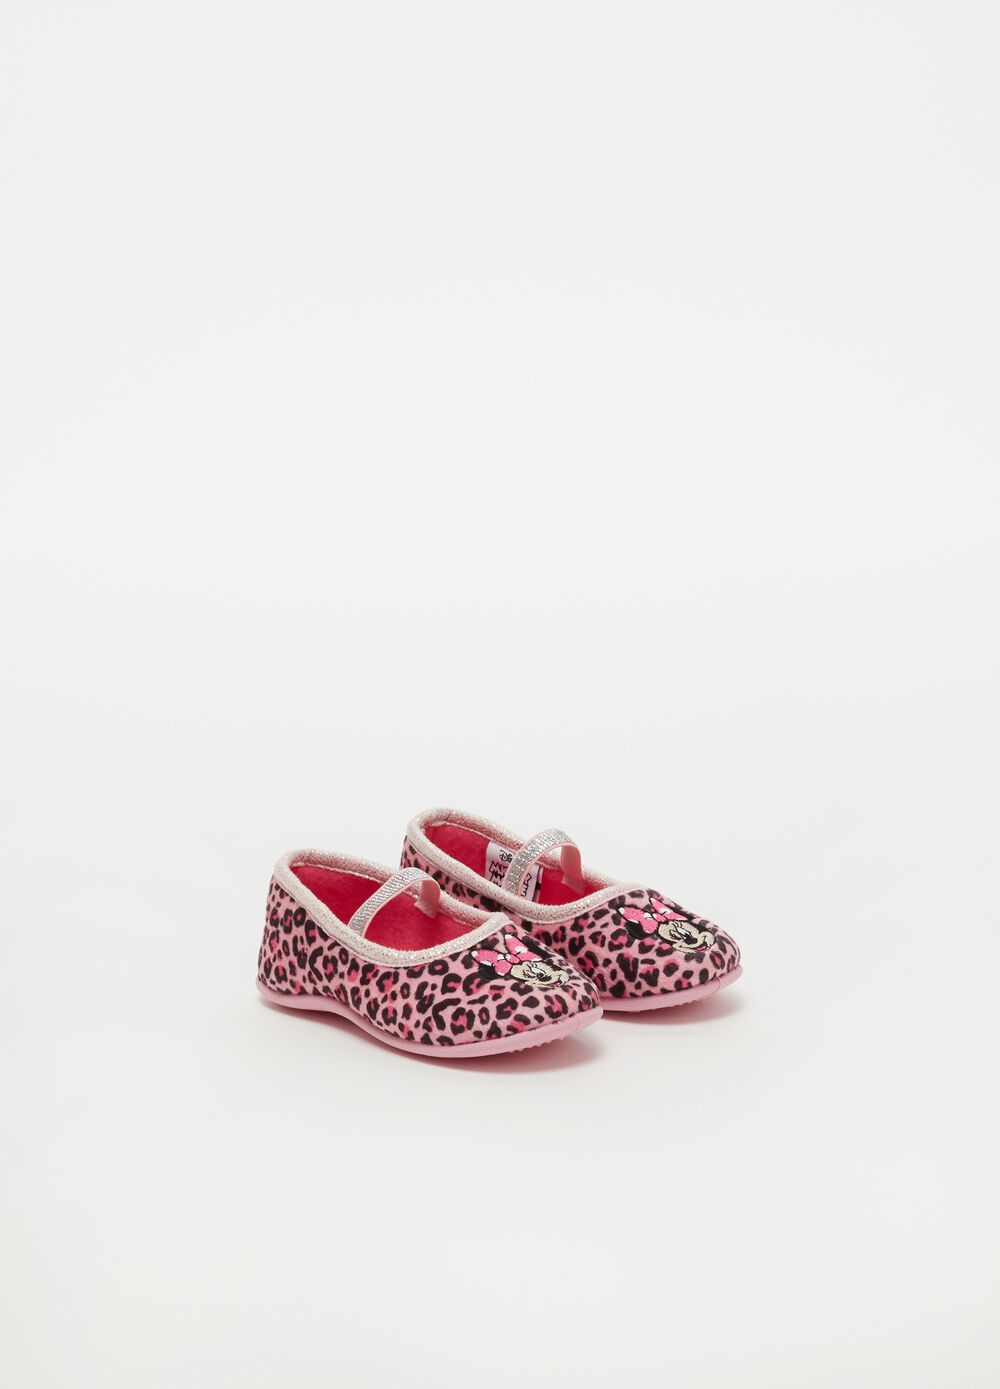 Slippers with Disney Minnie Mouse embroidery